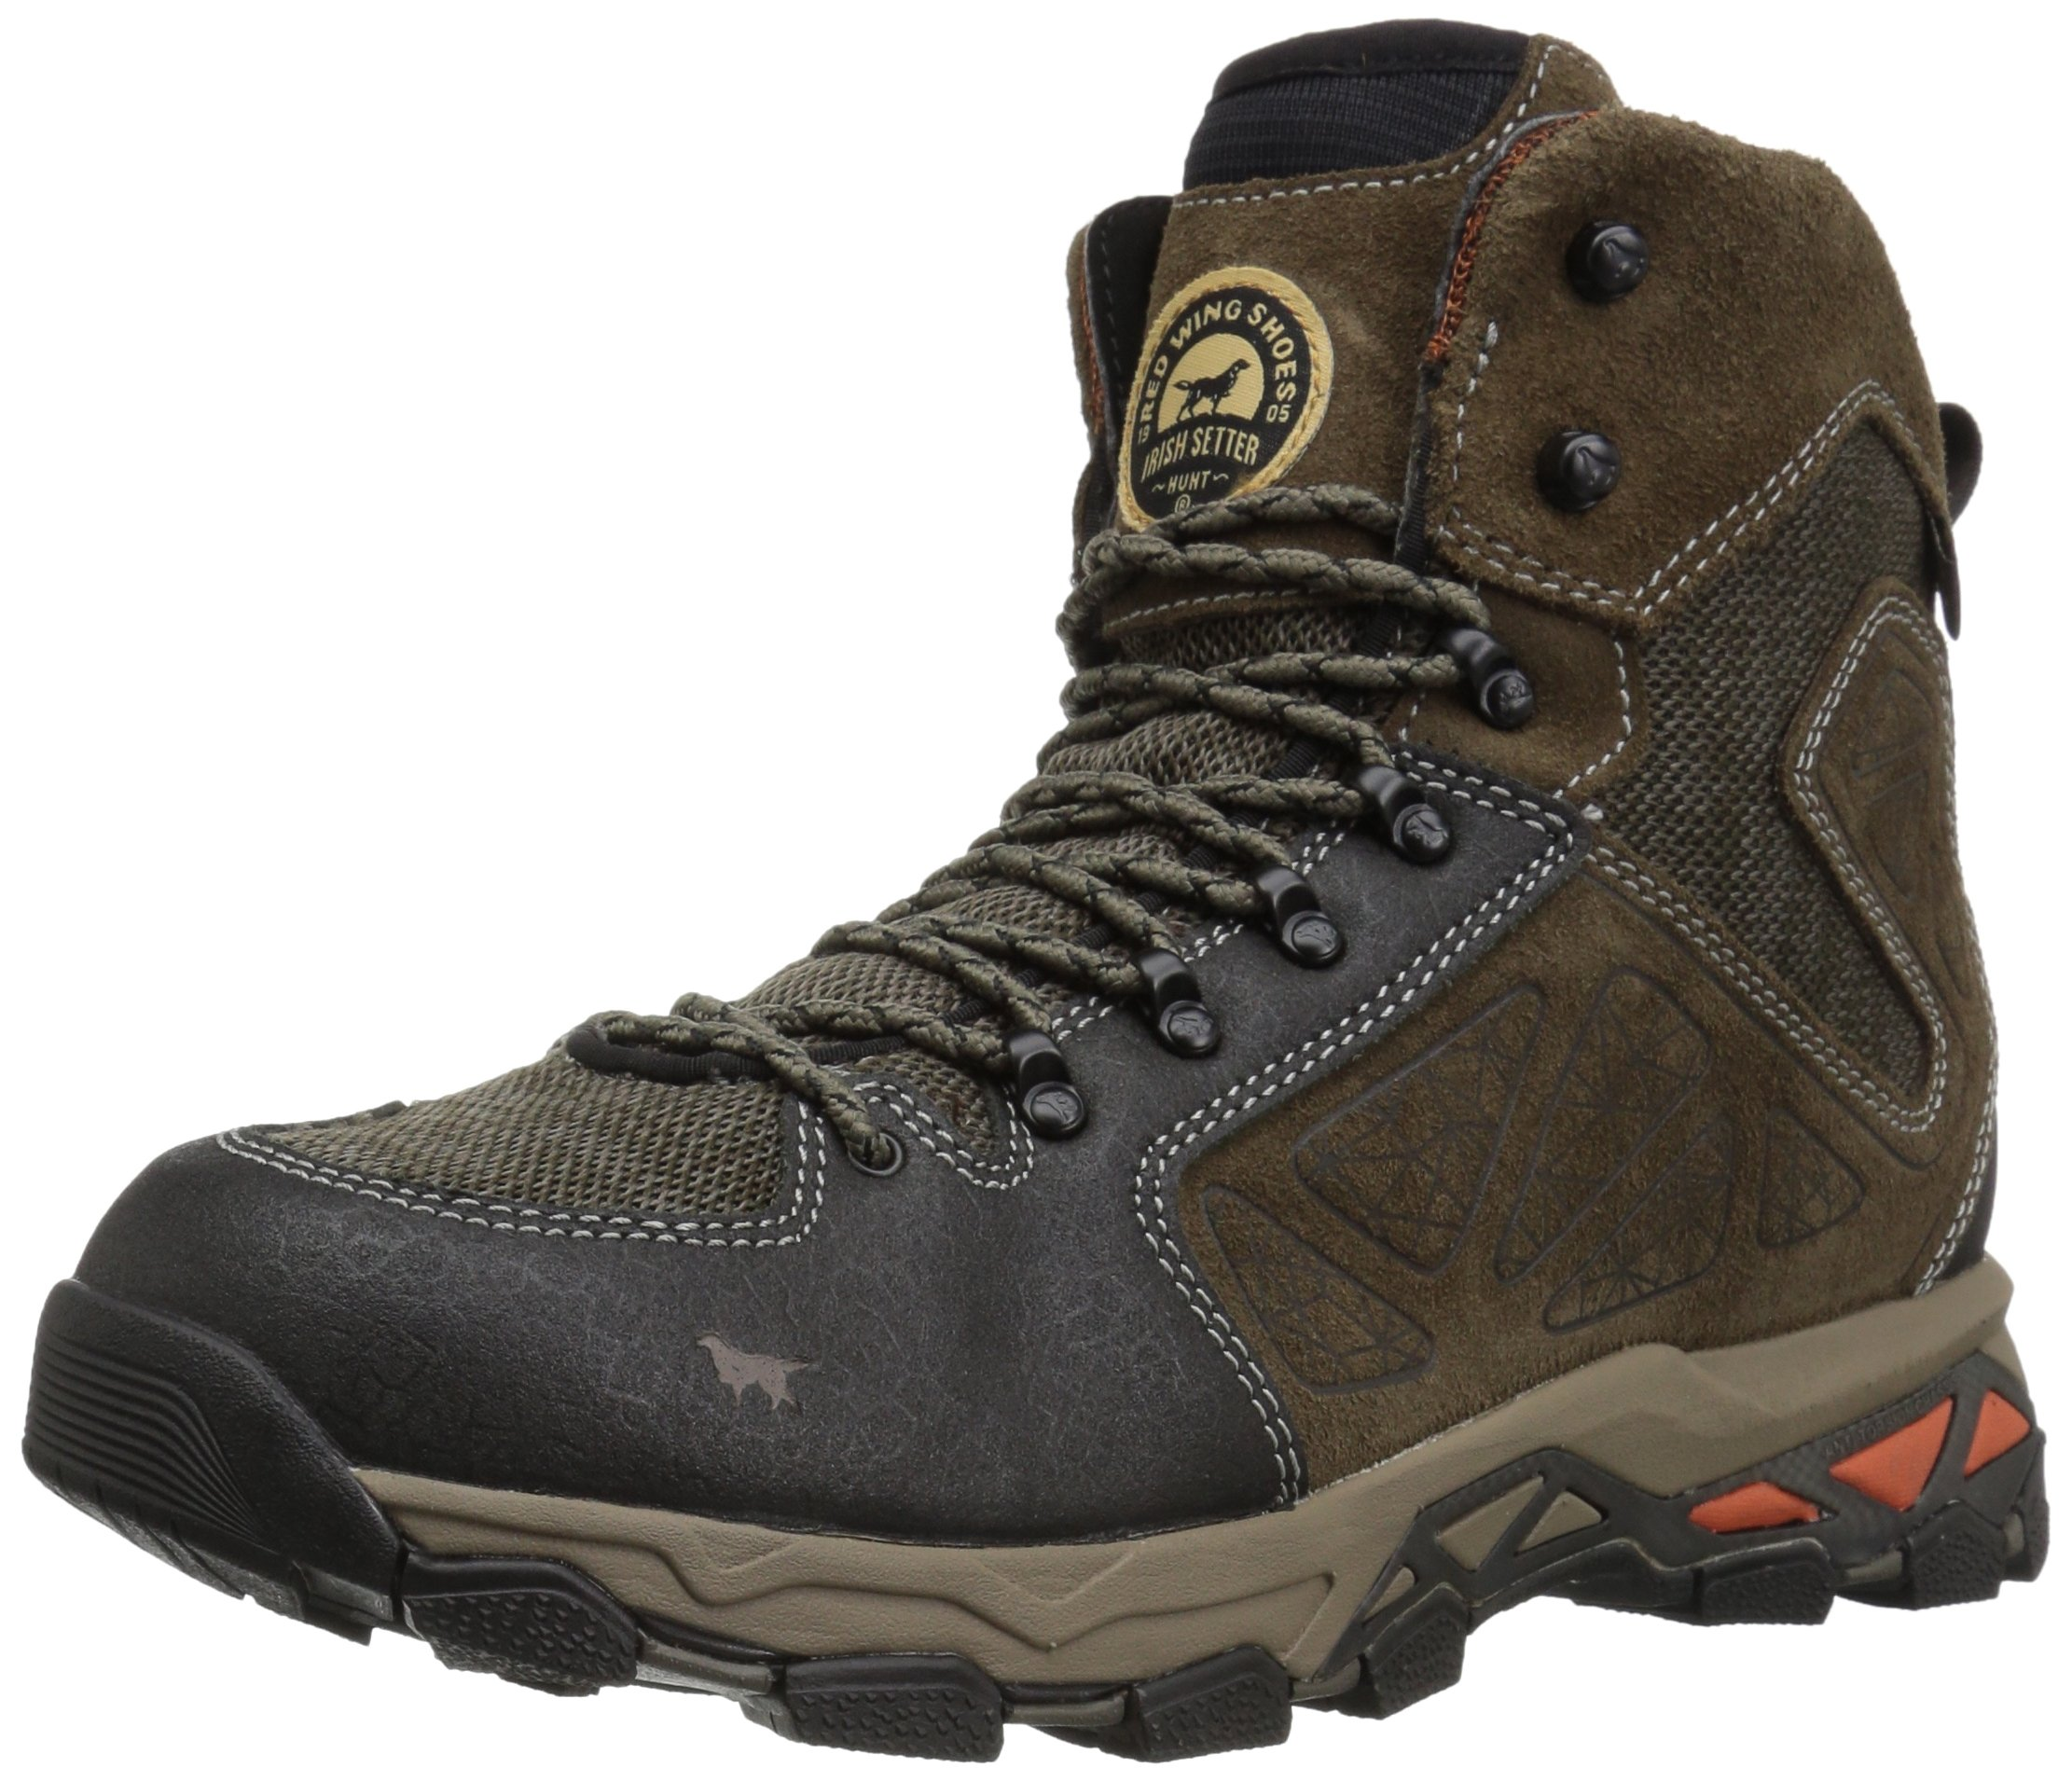 Irish Setter Men's Ravine-2880 Hunting Shoes, Gray/Black, 9 D US